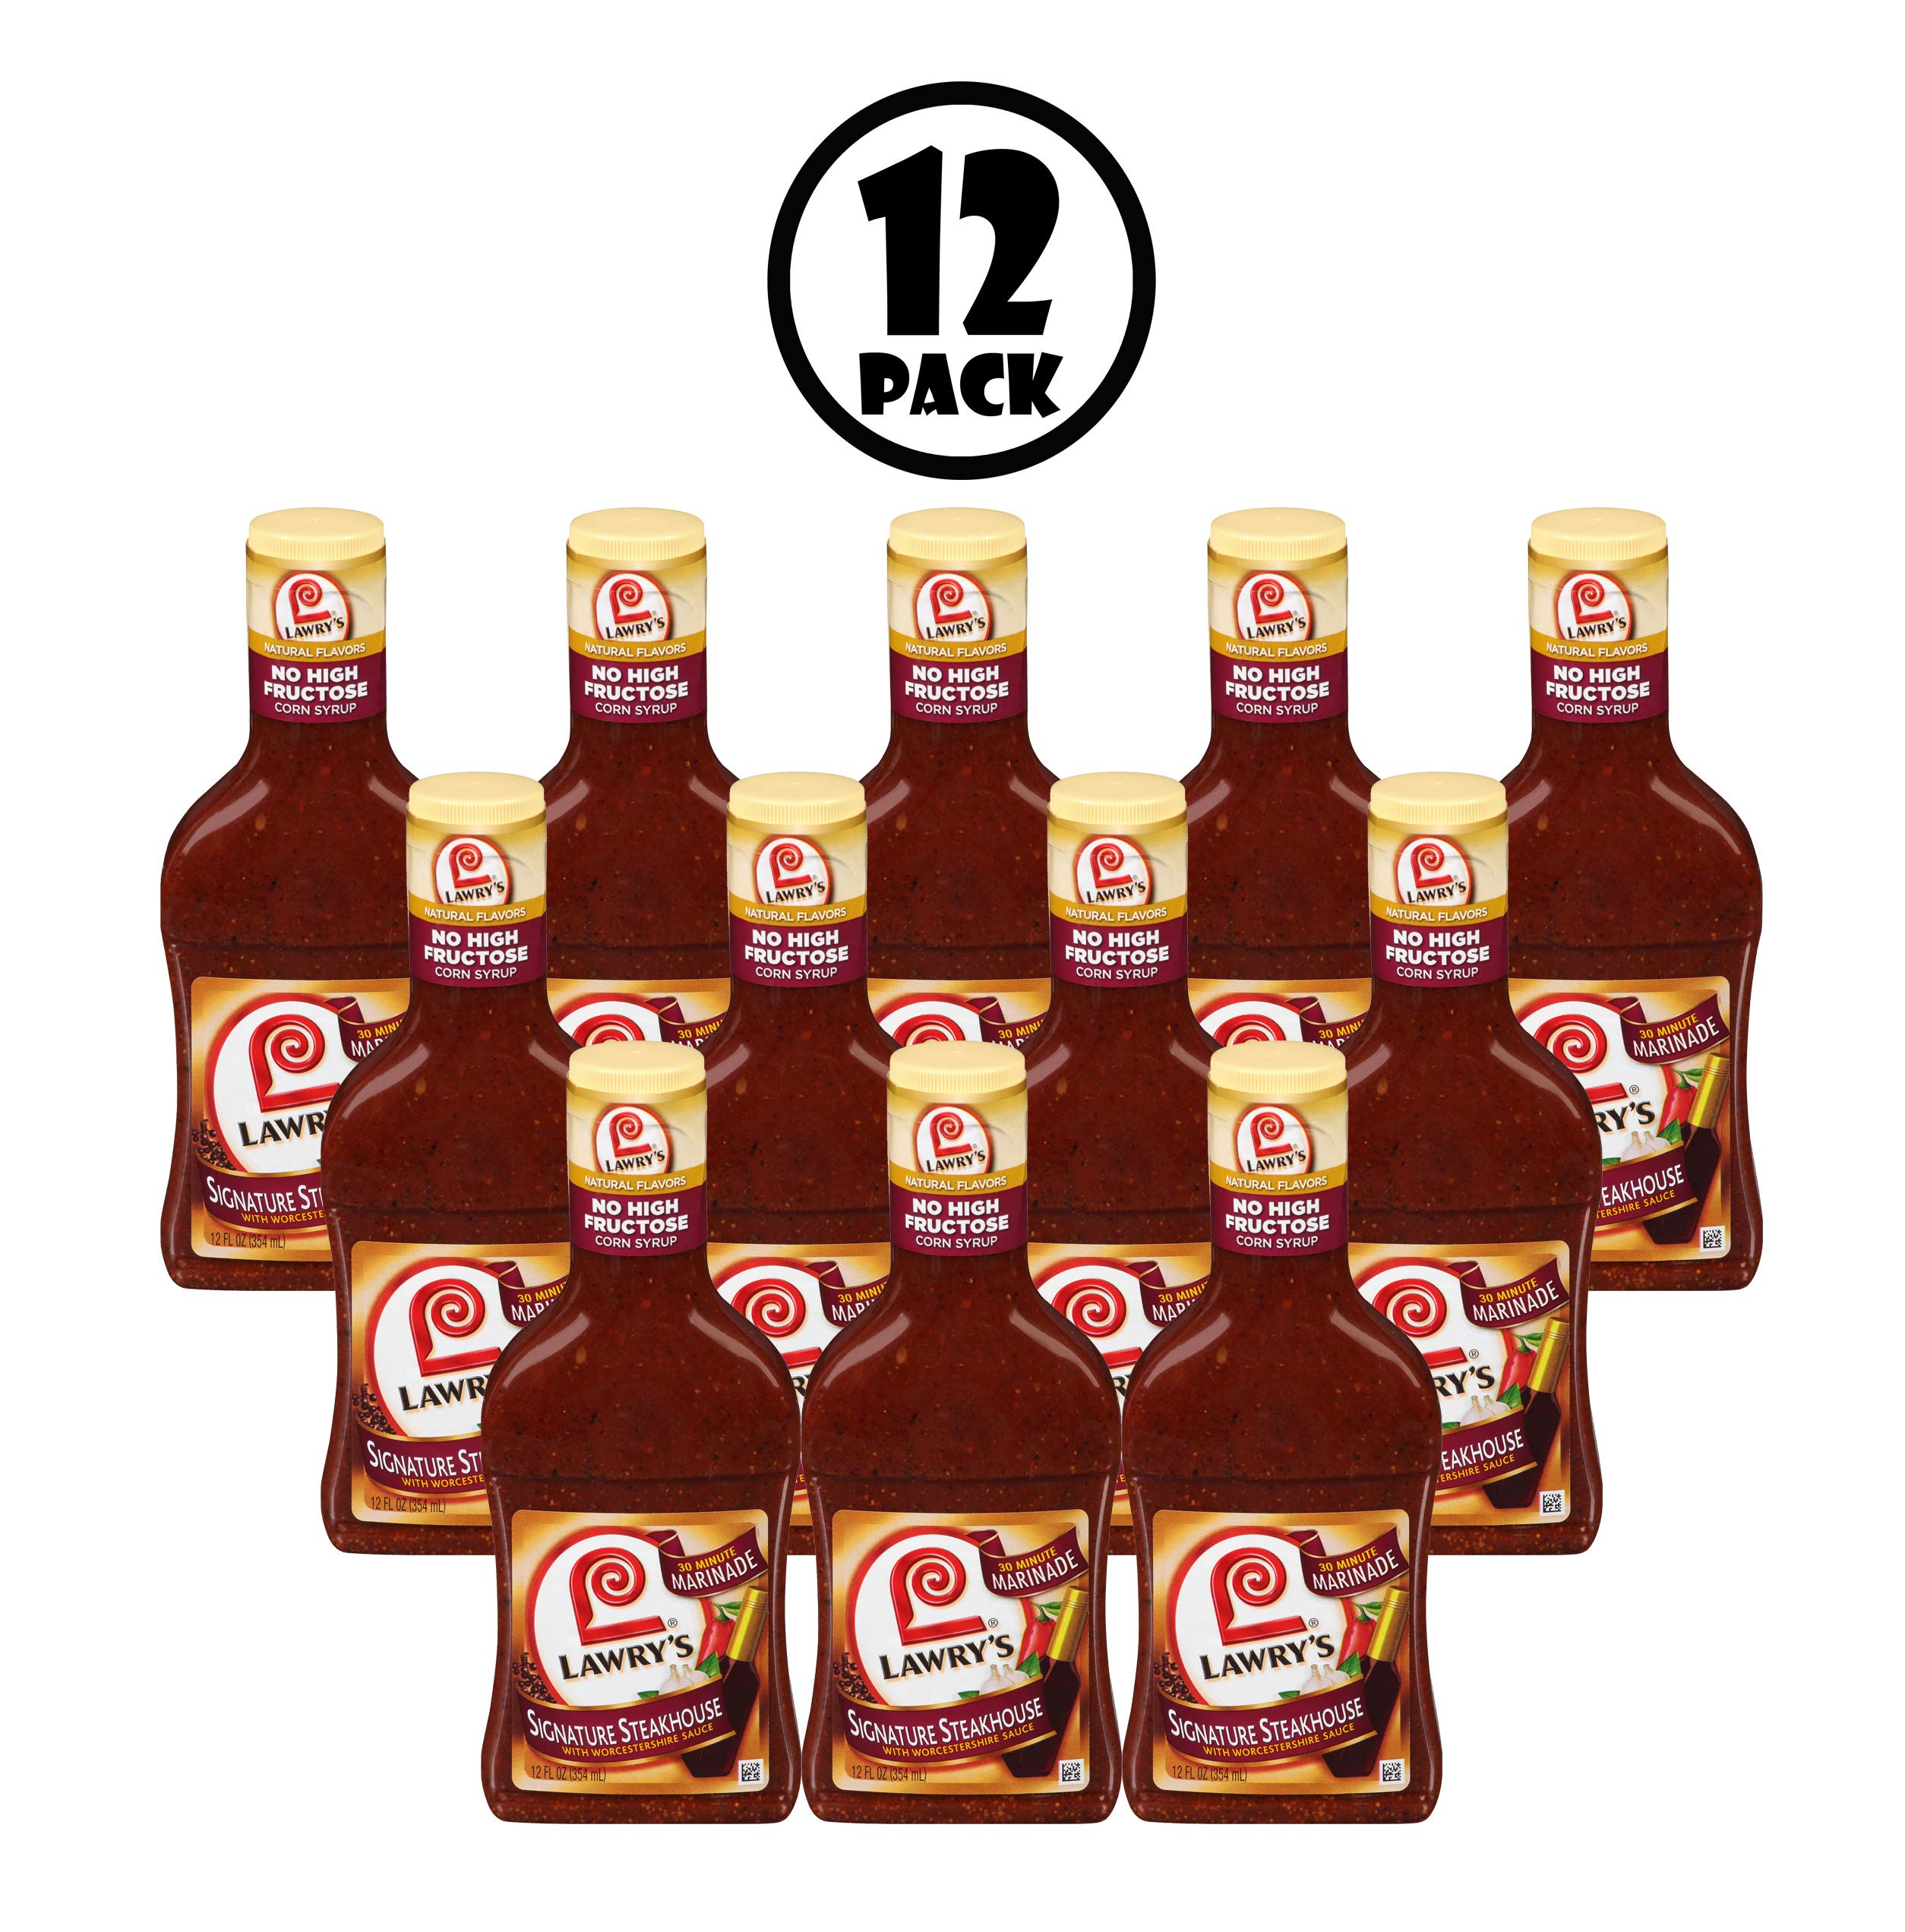 (12 Pack) Lawry's Steakhouse Marinade, 12 oz